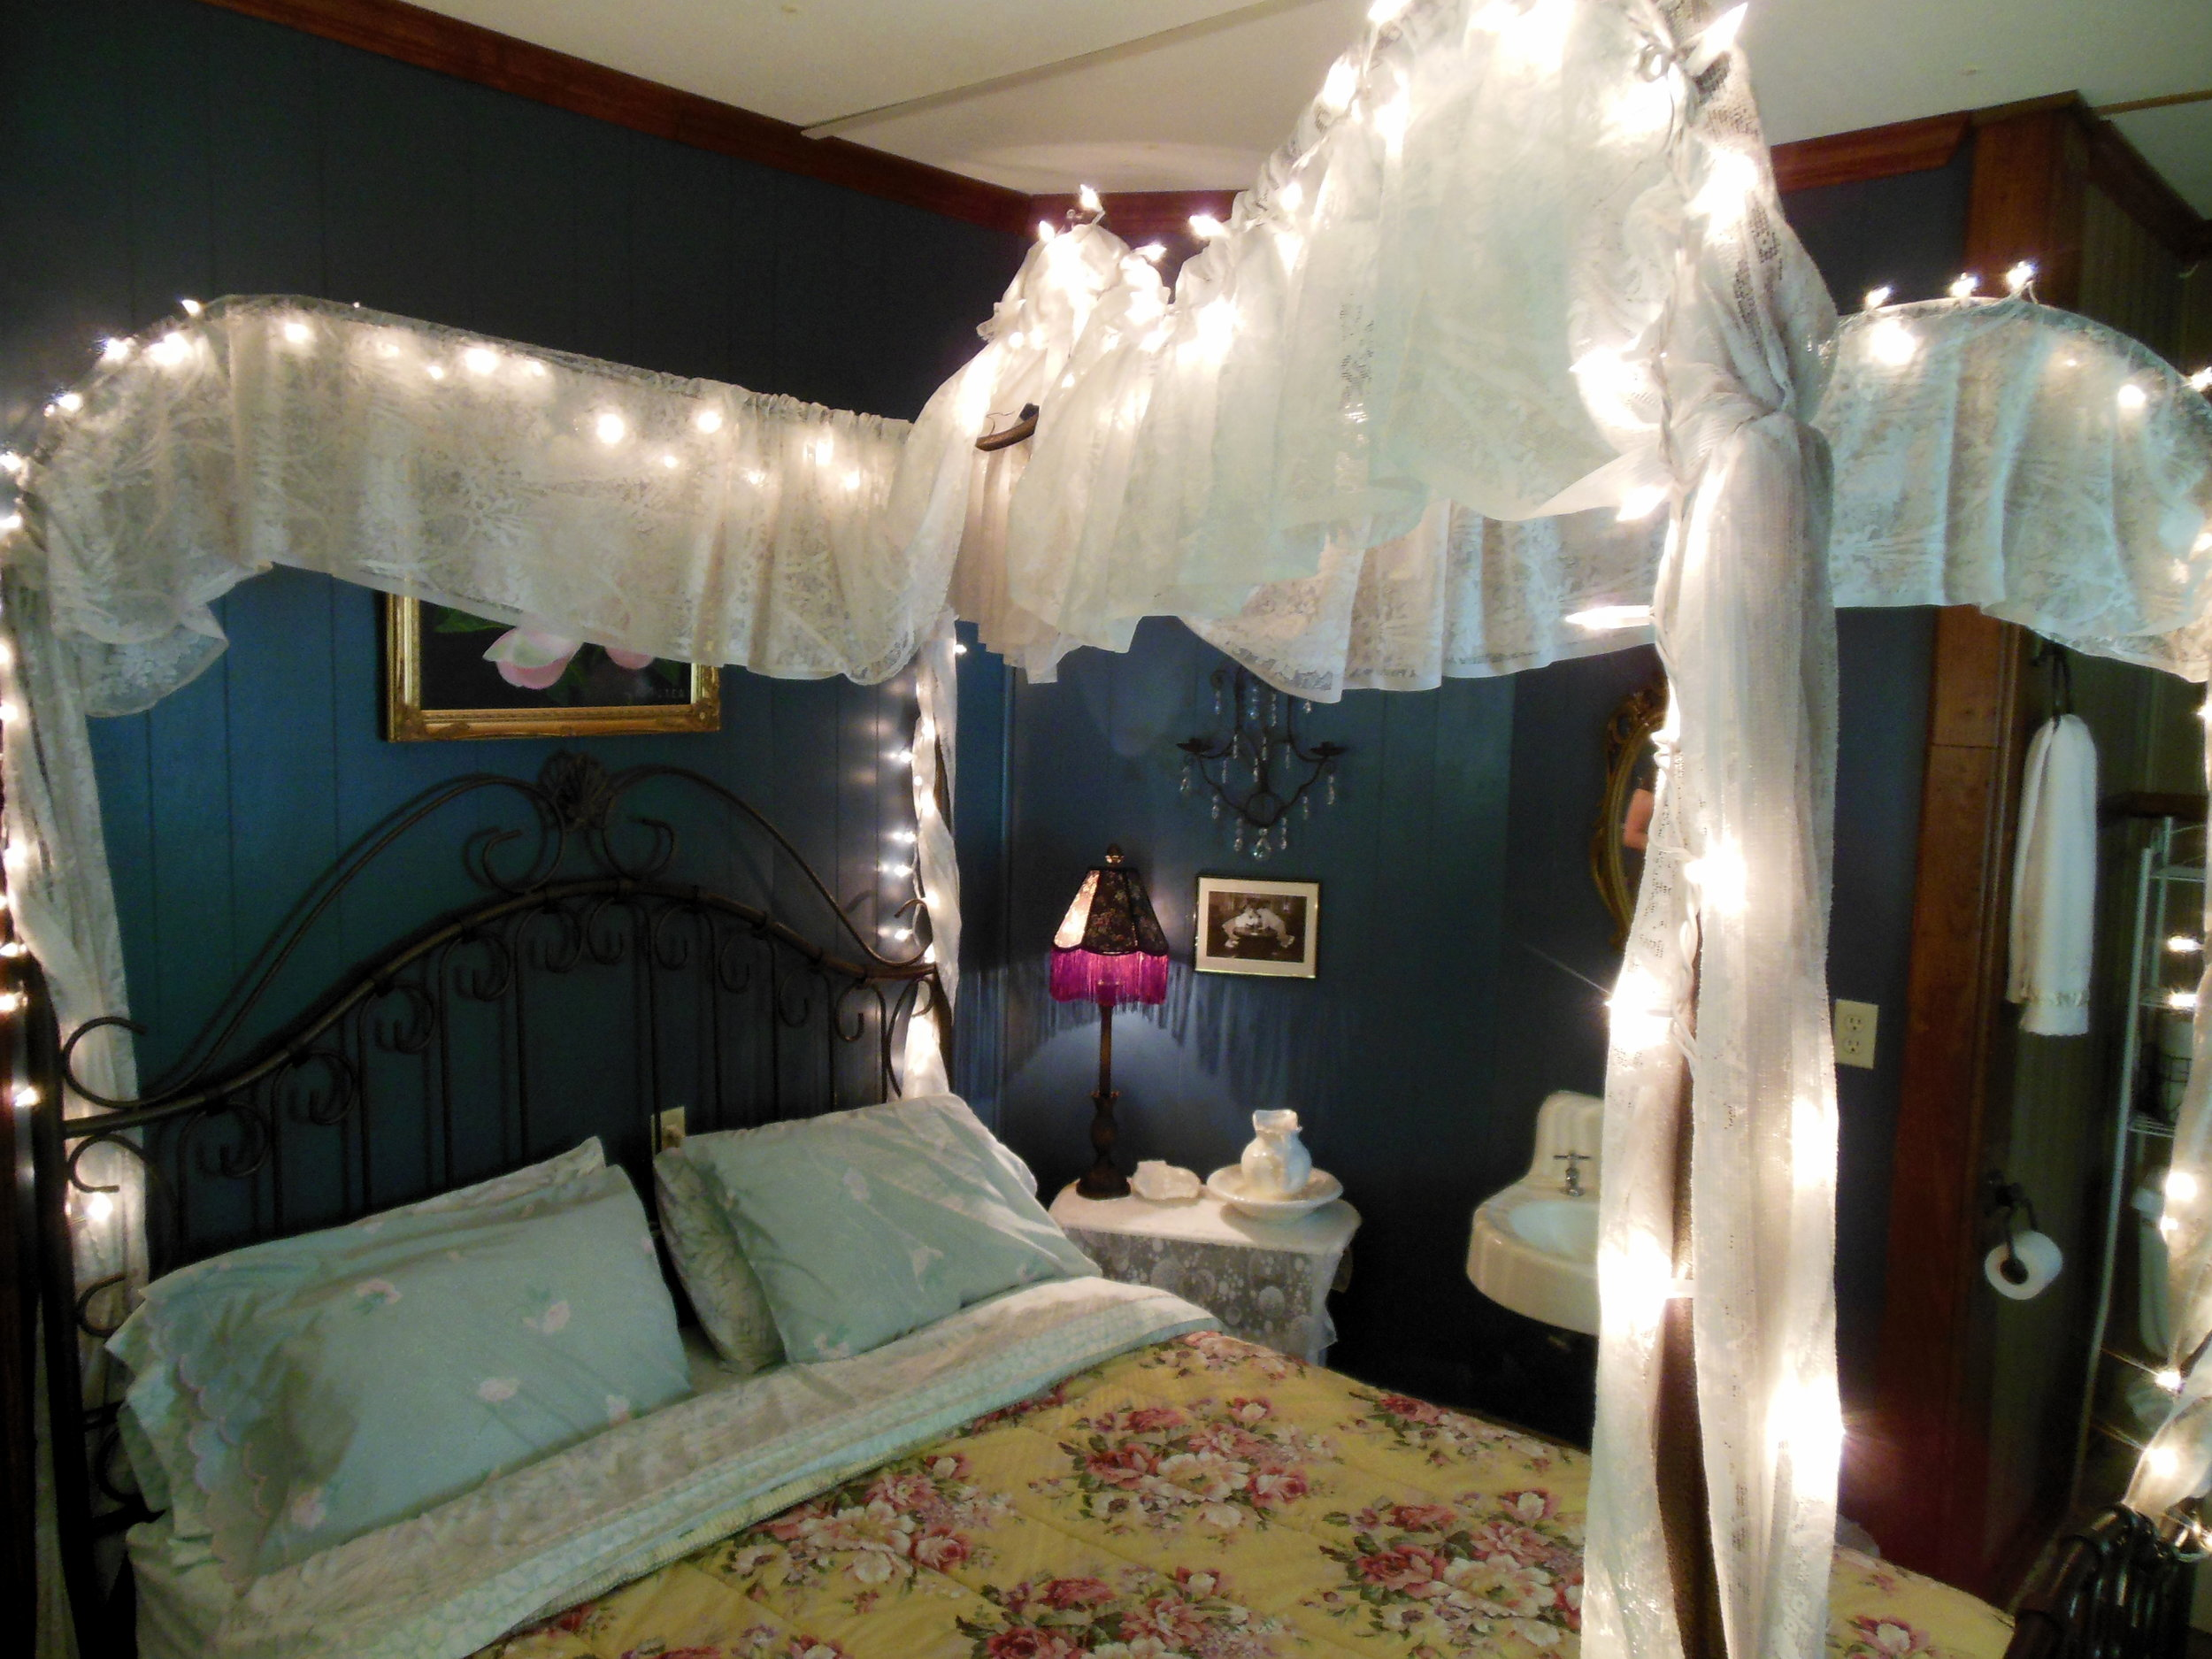 One of the many themed rooms inside the Armour's Hotel in Red Boiling Springs, TN.